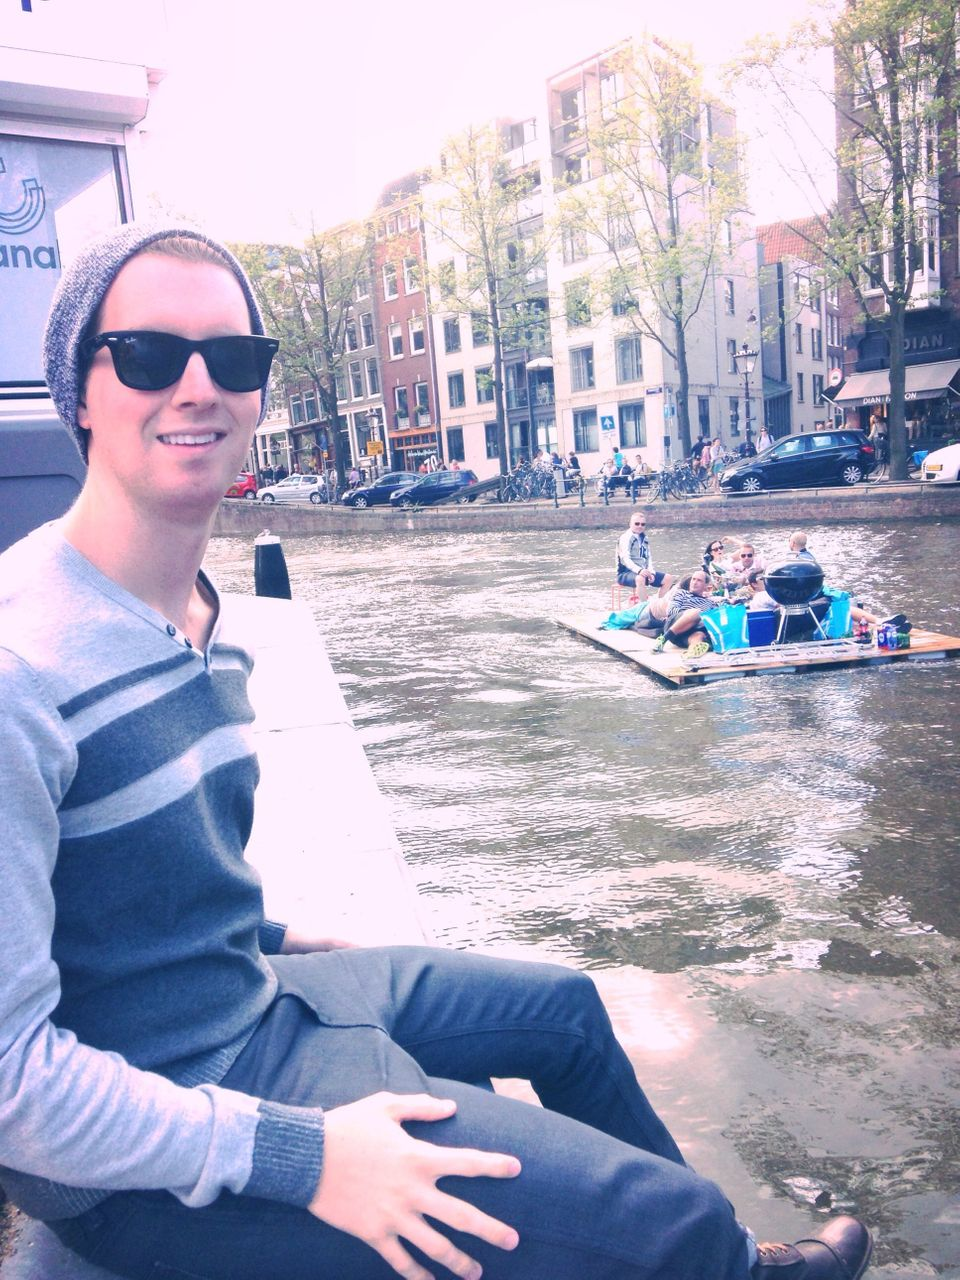 """""""On the canal. Like this picture because you can see the canal, awesome houses and the people on the floating raft behind me."""